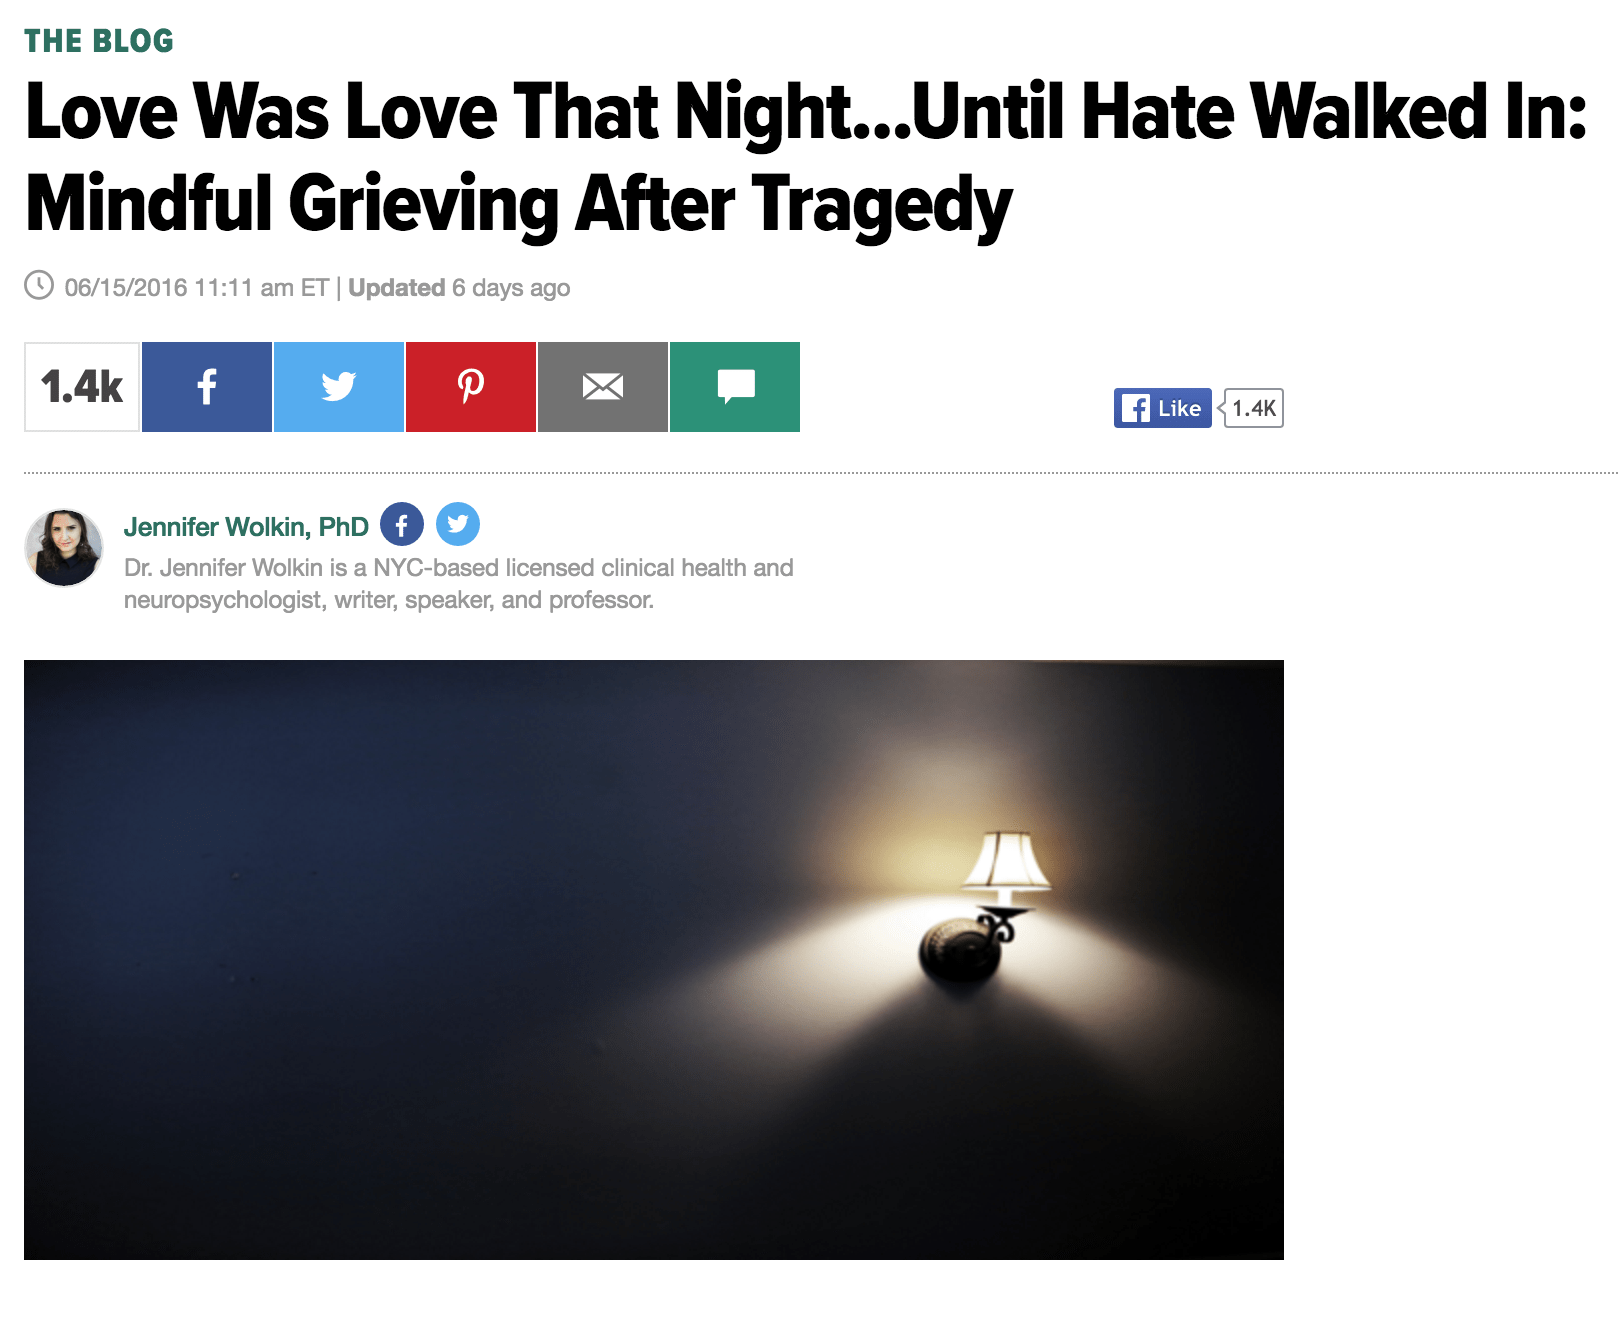 Repost: Love Was Love That Night…Until Hate Walked In: Mindful Grieving After Tragedy